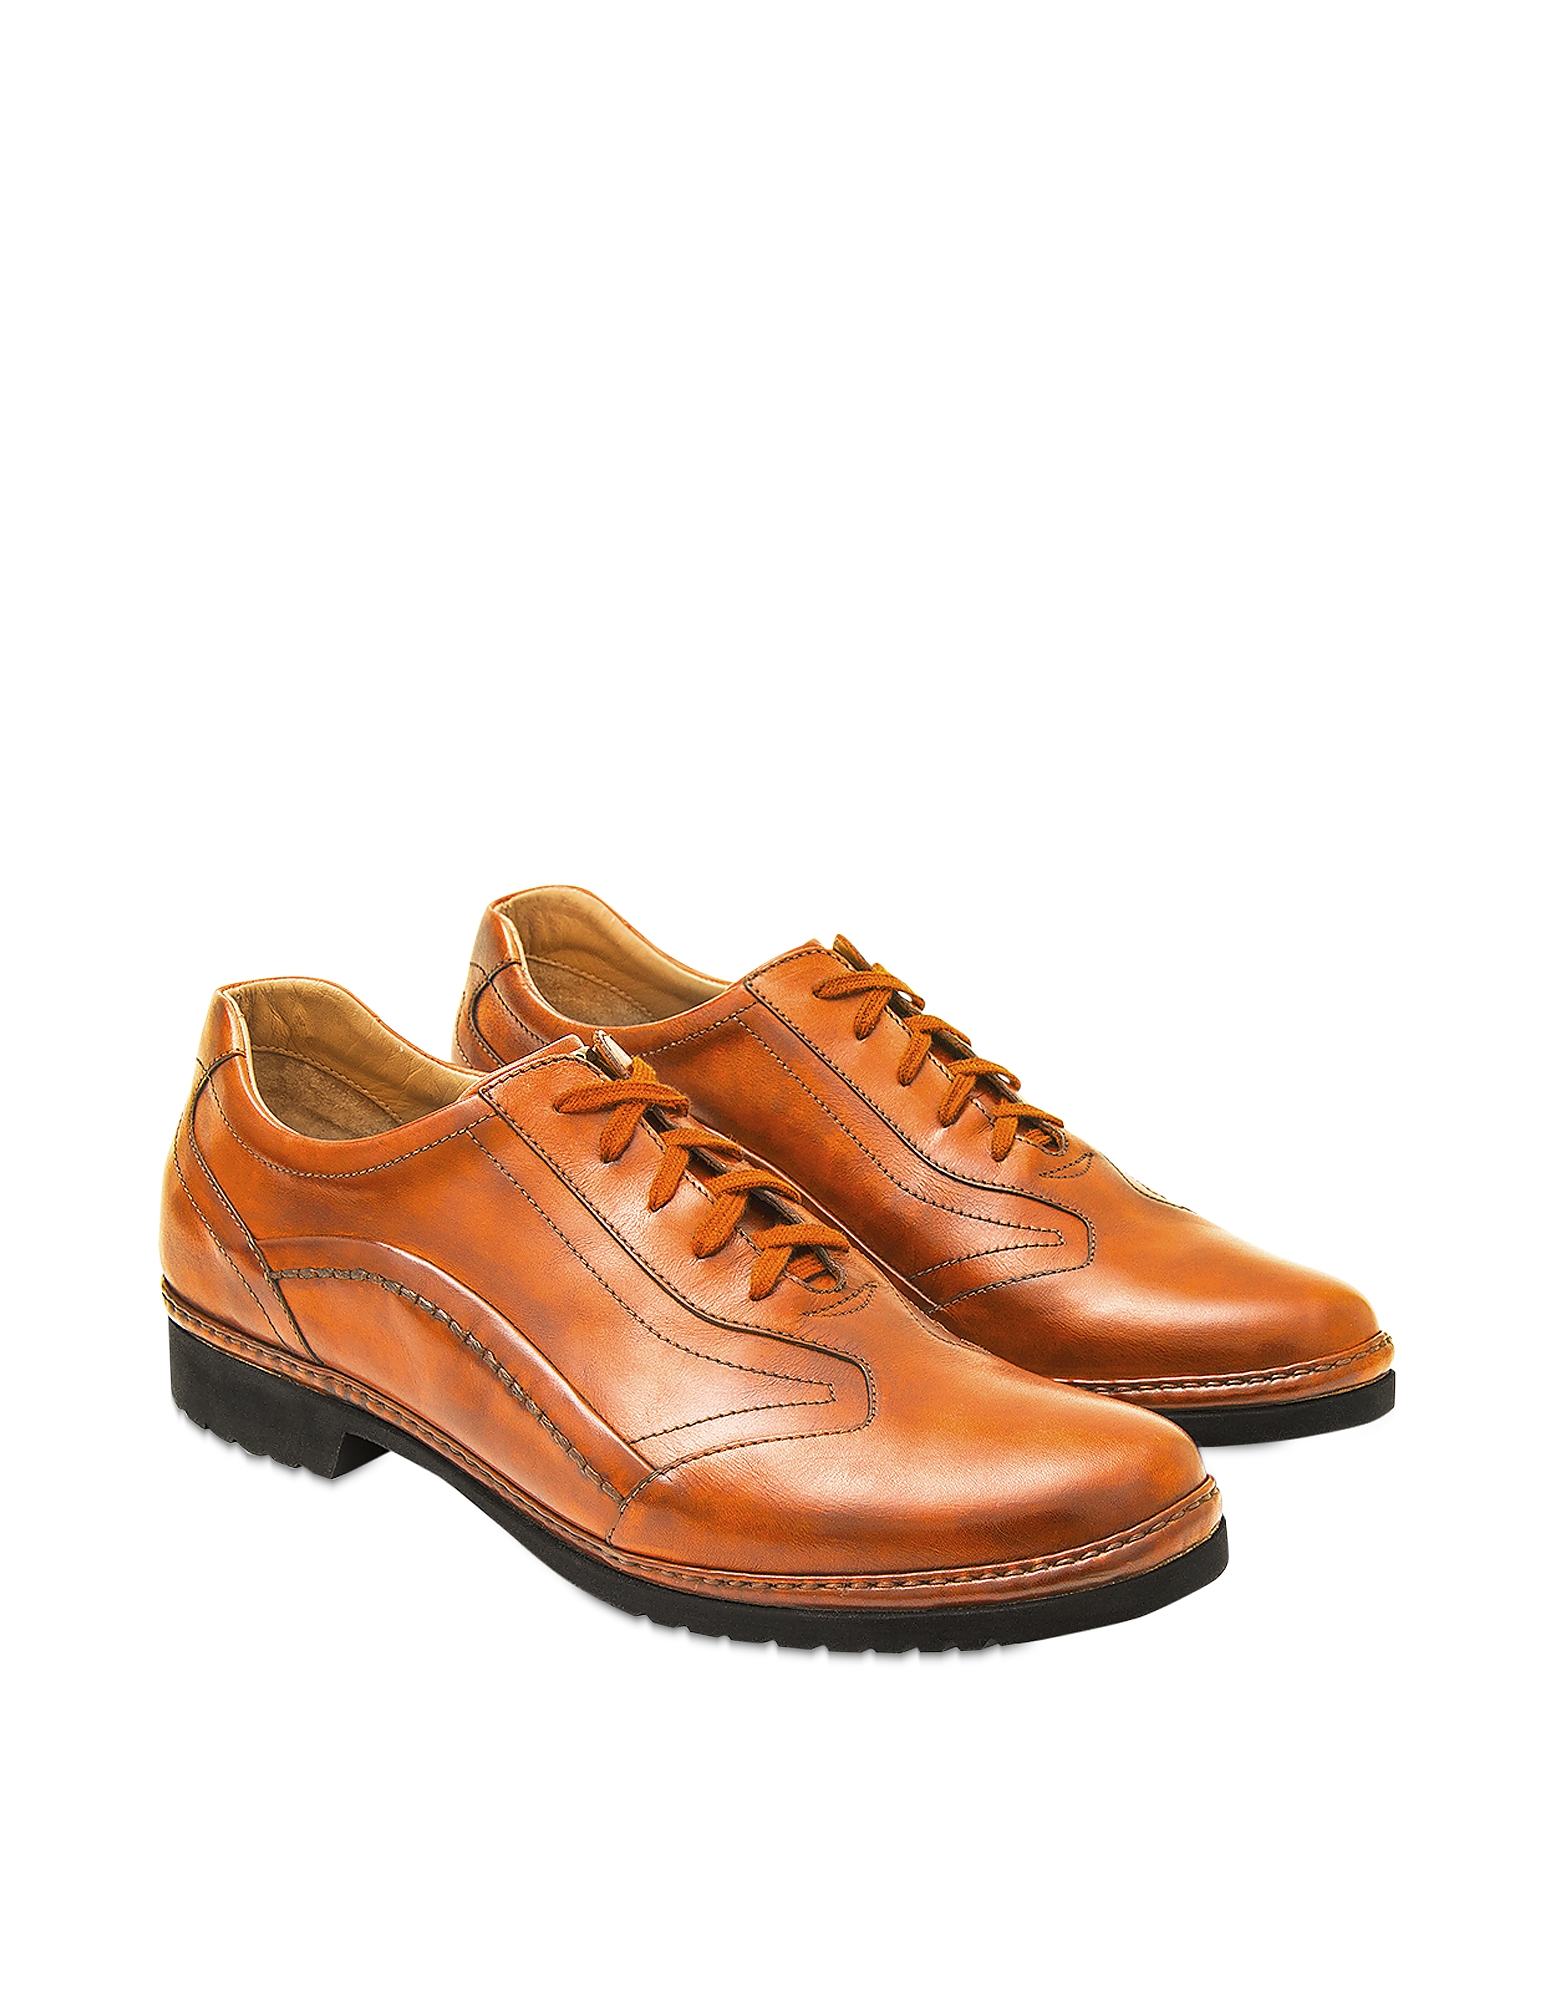 Pakerson Designer Shoes, Orange Italian Handmade Leather Lace-up Shoes